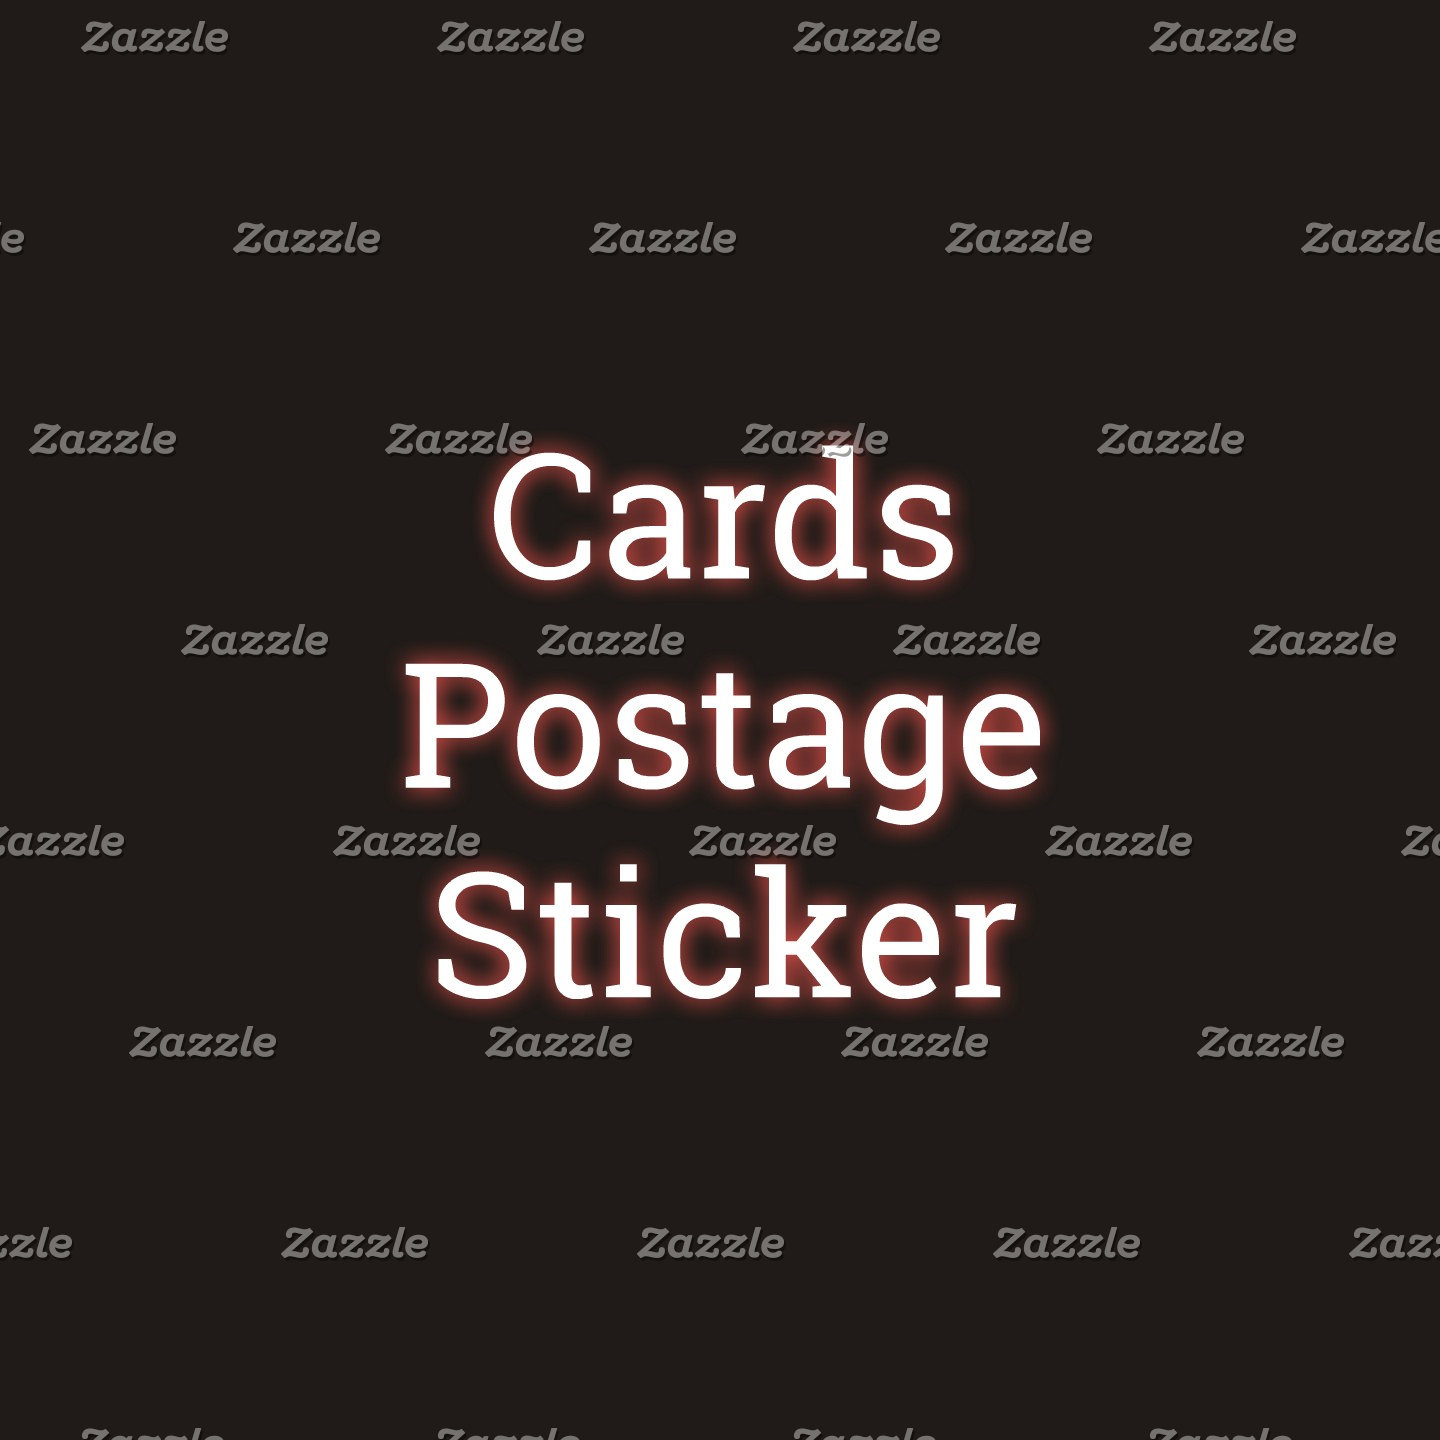 Cards&Postage&Sticker